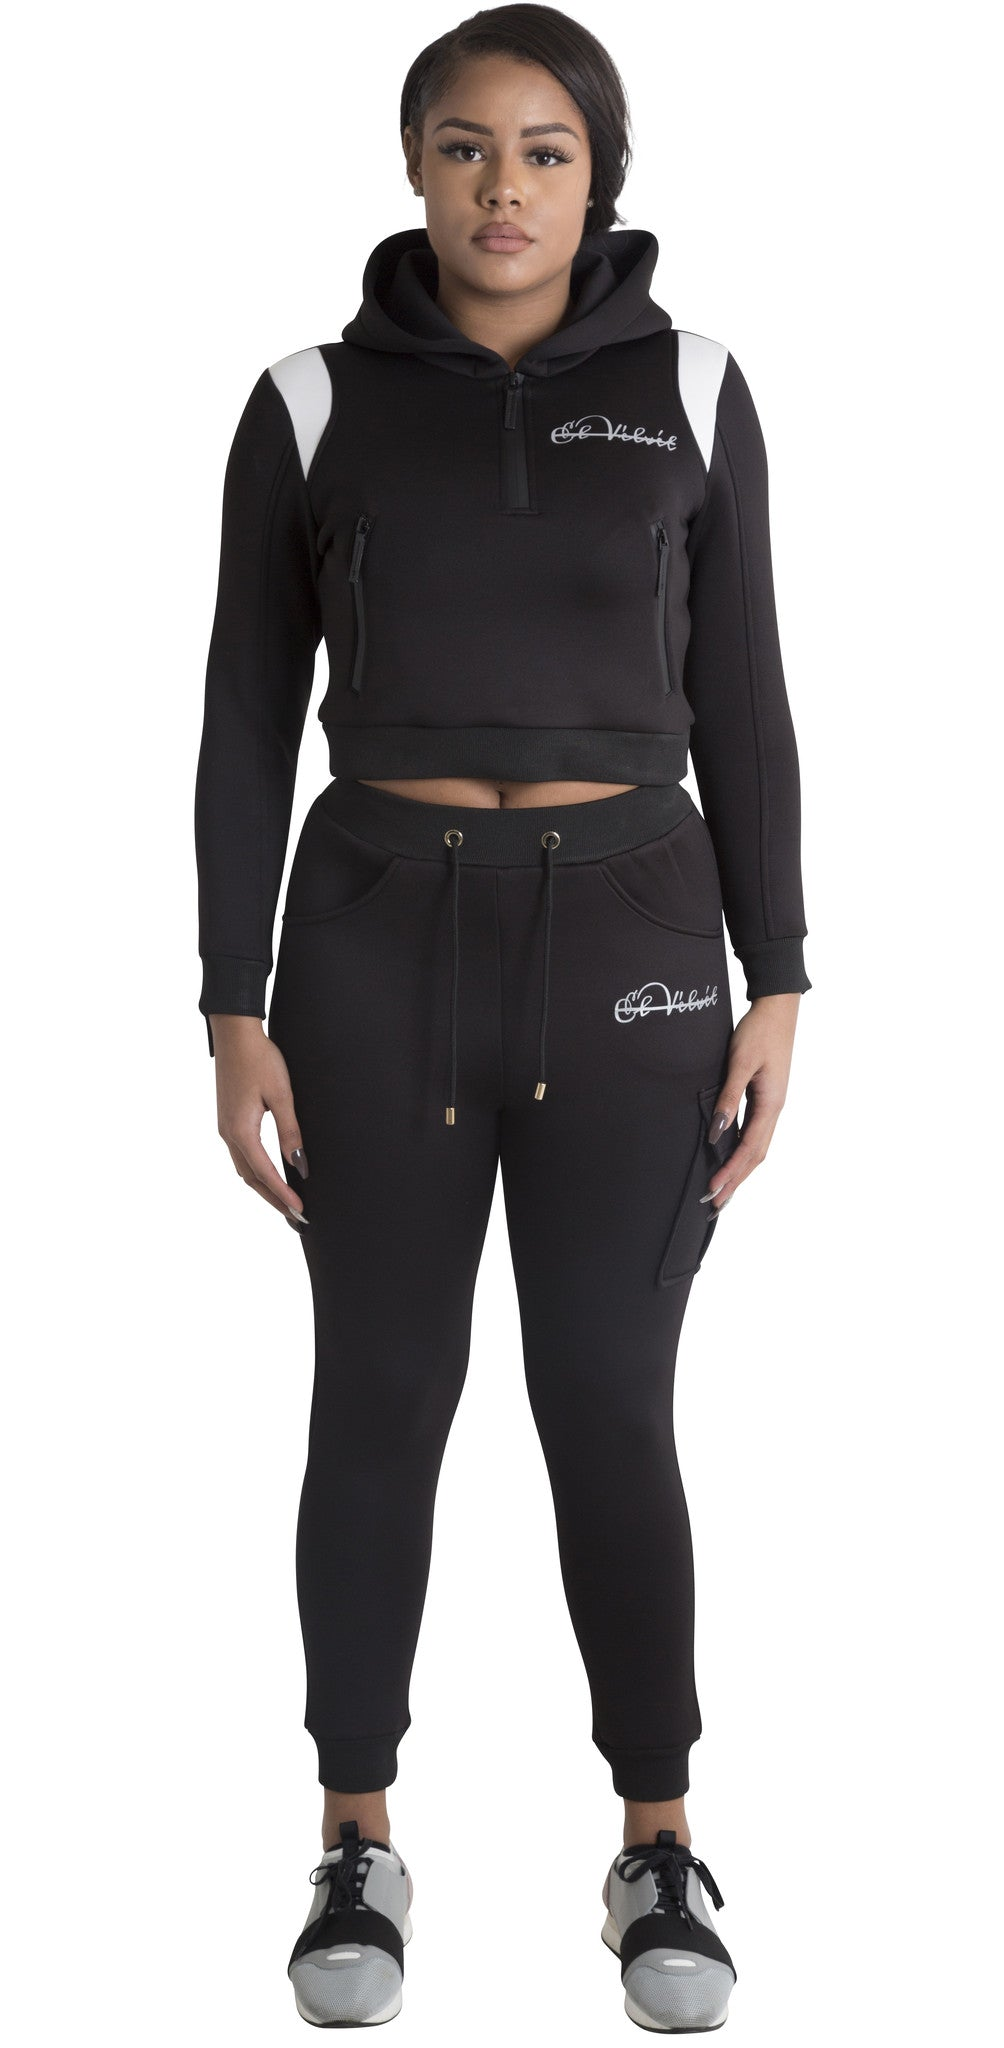 Women Black Space Cotton with White Stripe Full Tracksuit